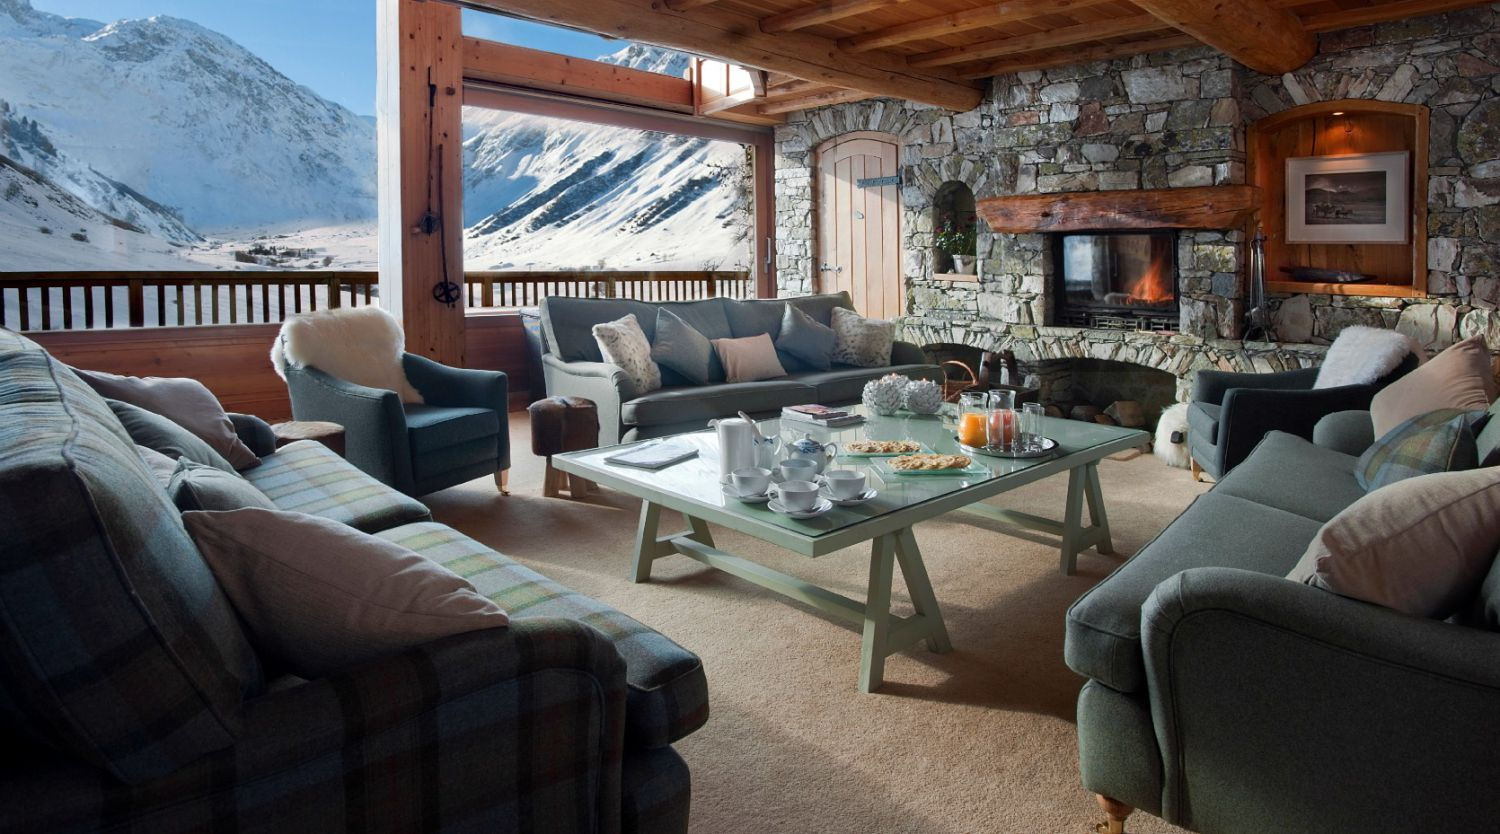 Rustic living room area of Chalet Le Chardon